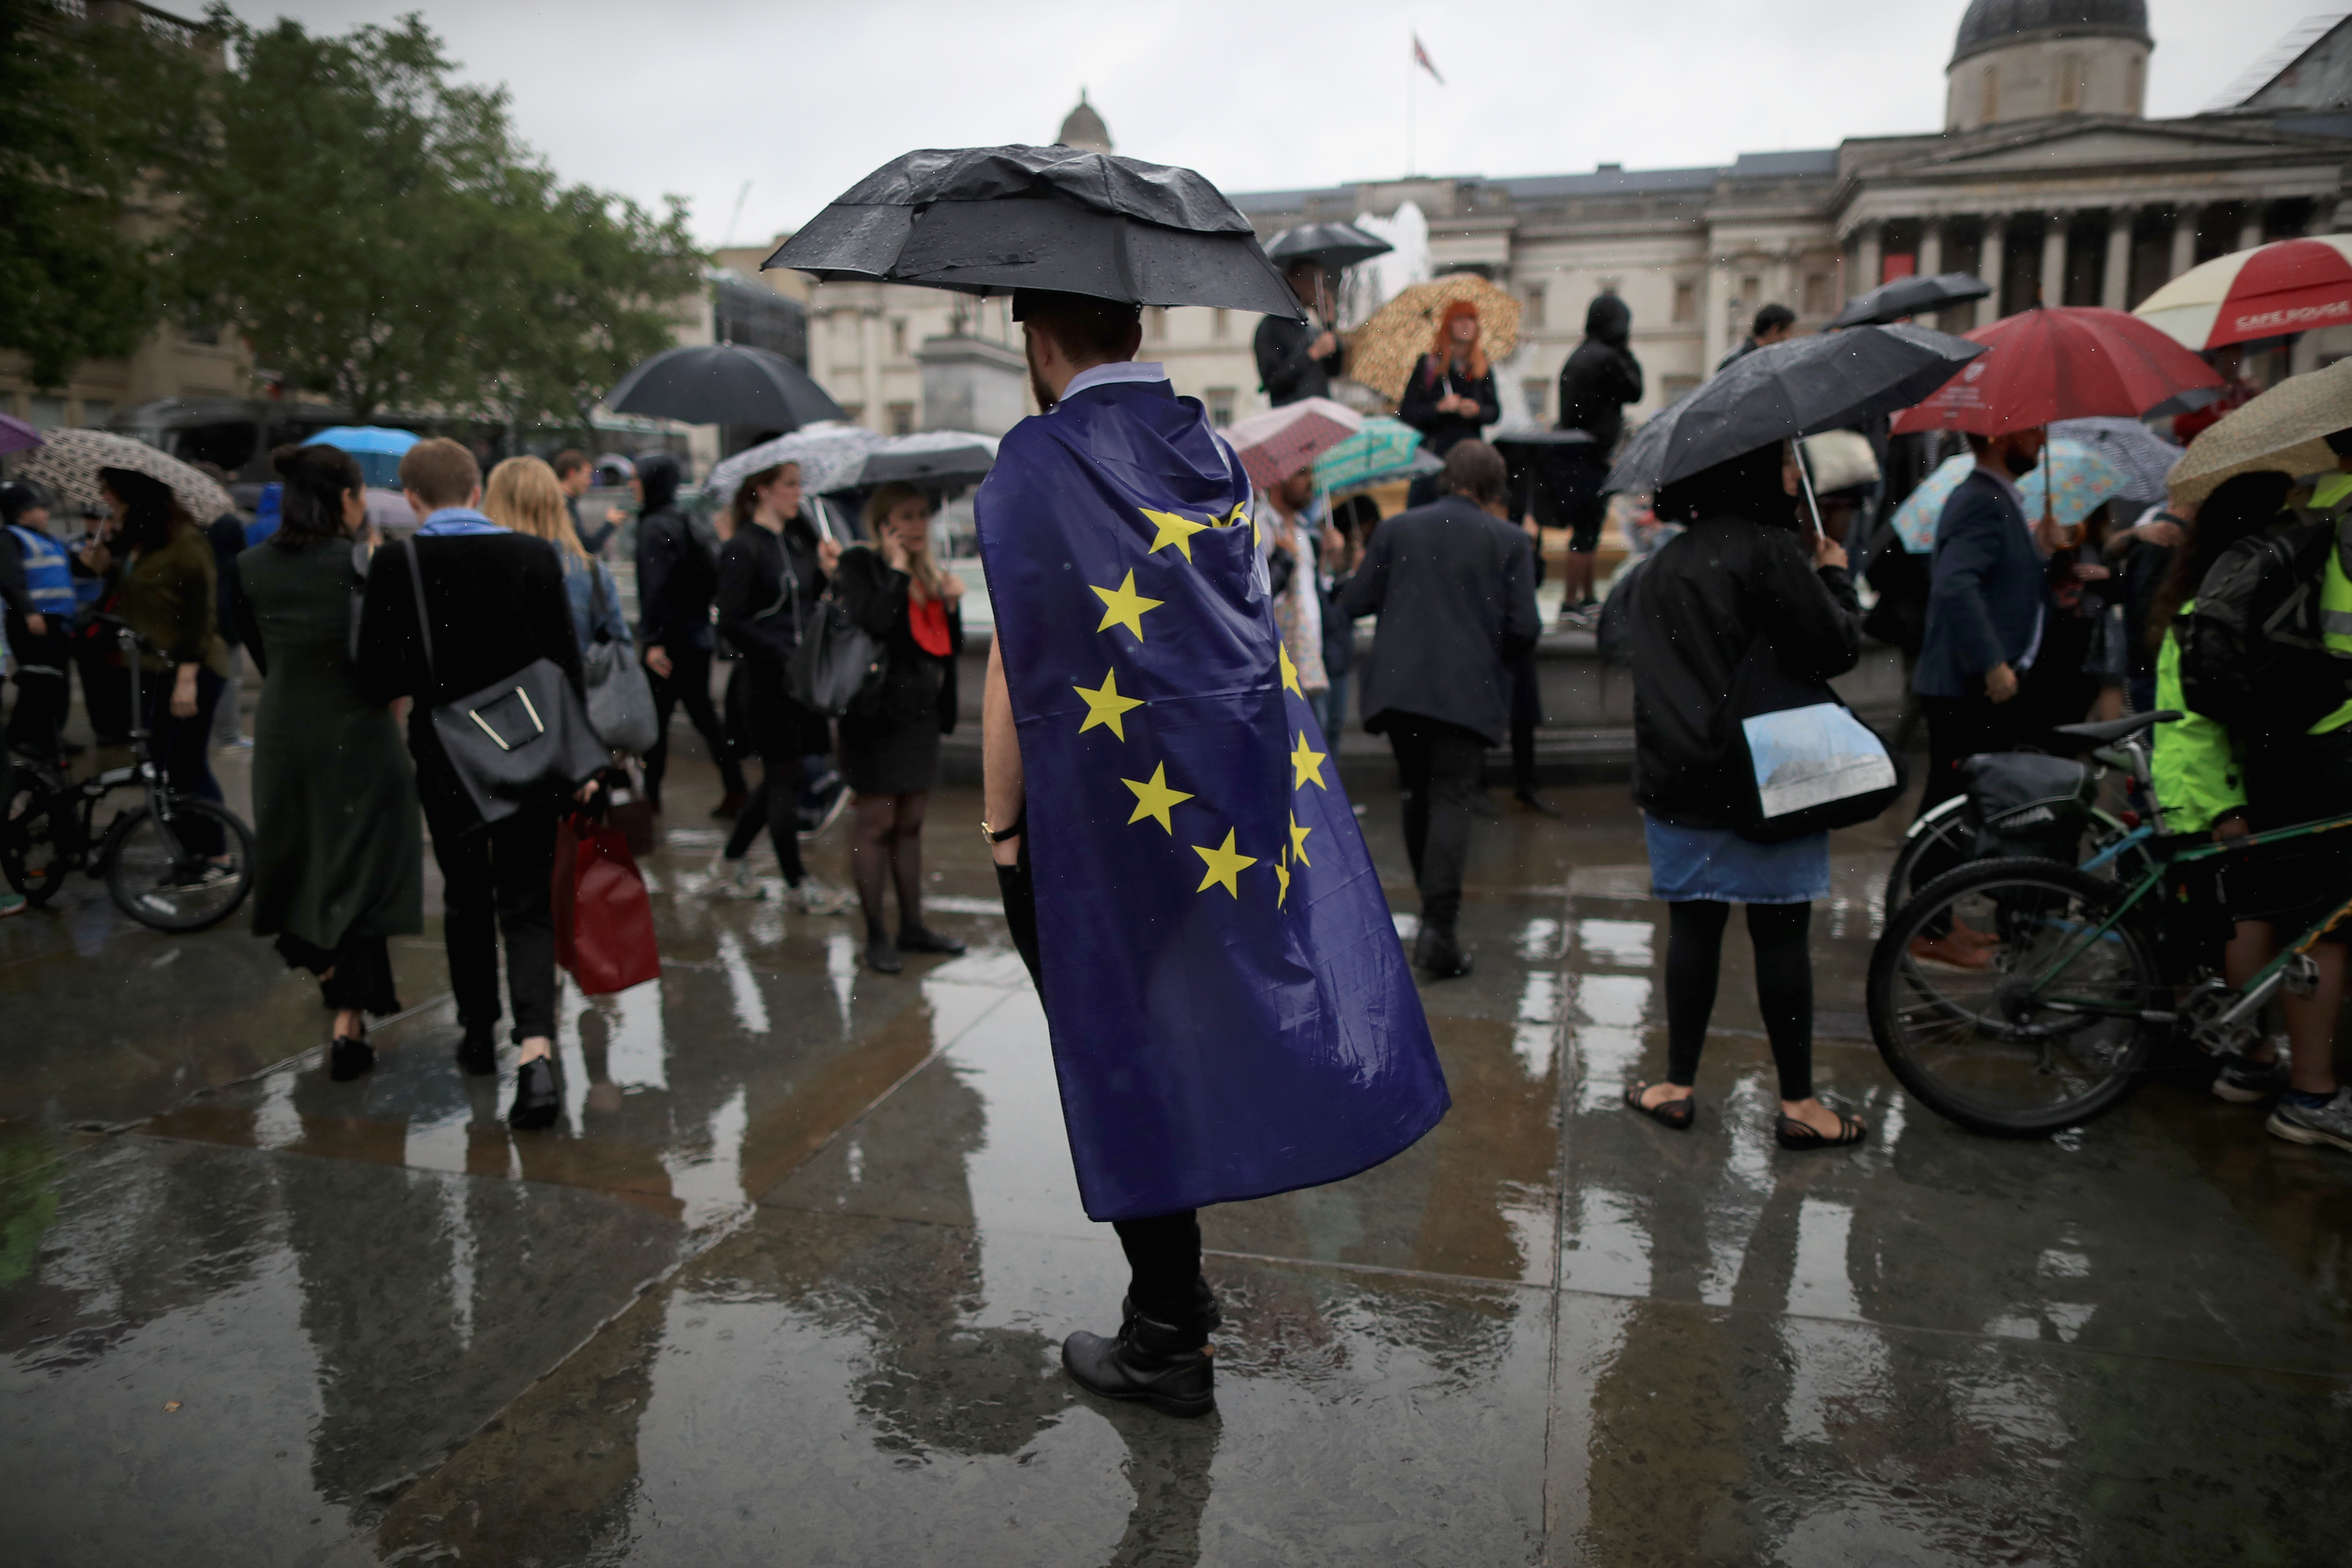 Protesters gather against the EU referendum result in Trafalgar Square on June 28, 2016 in London.